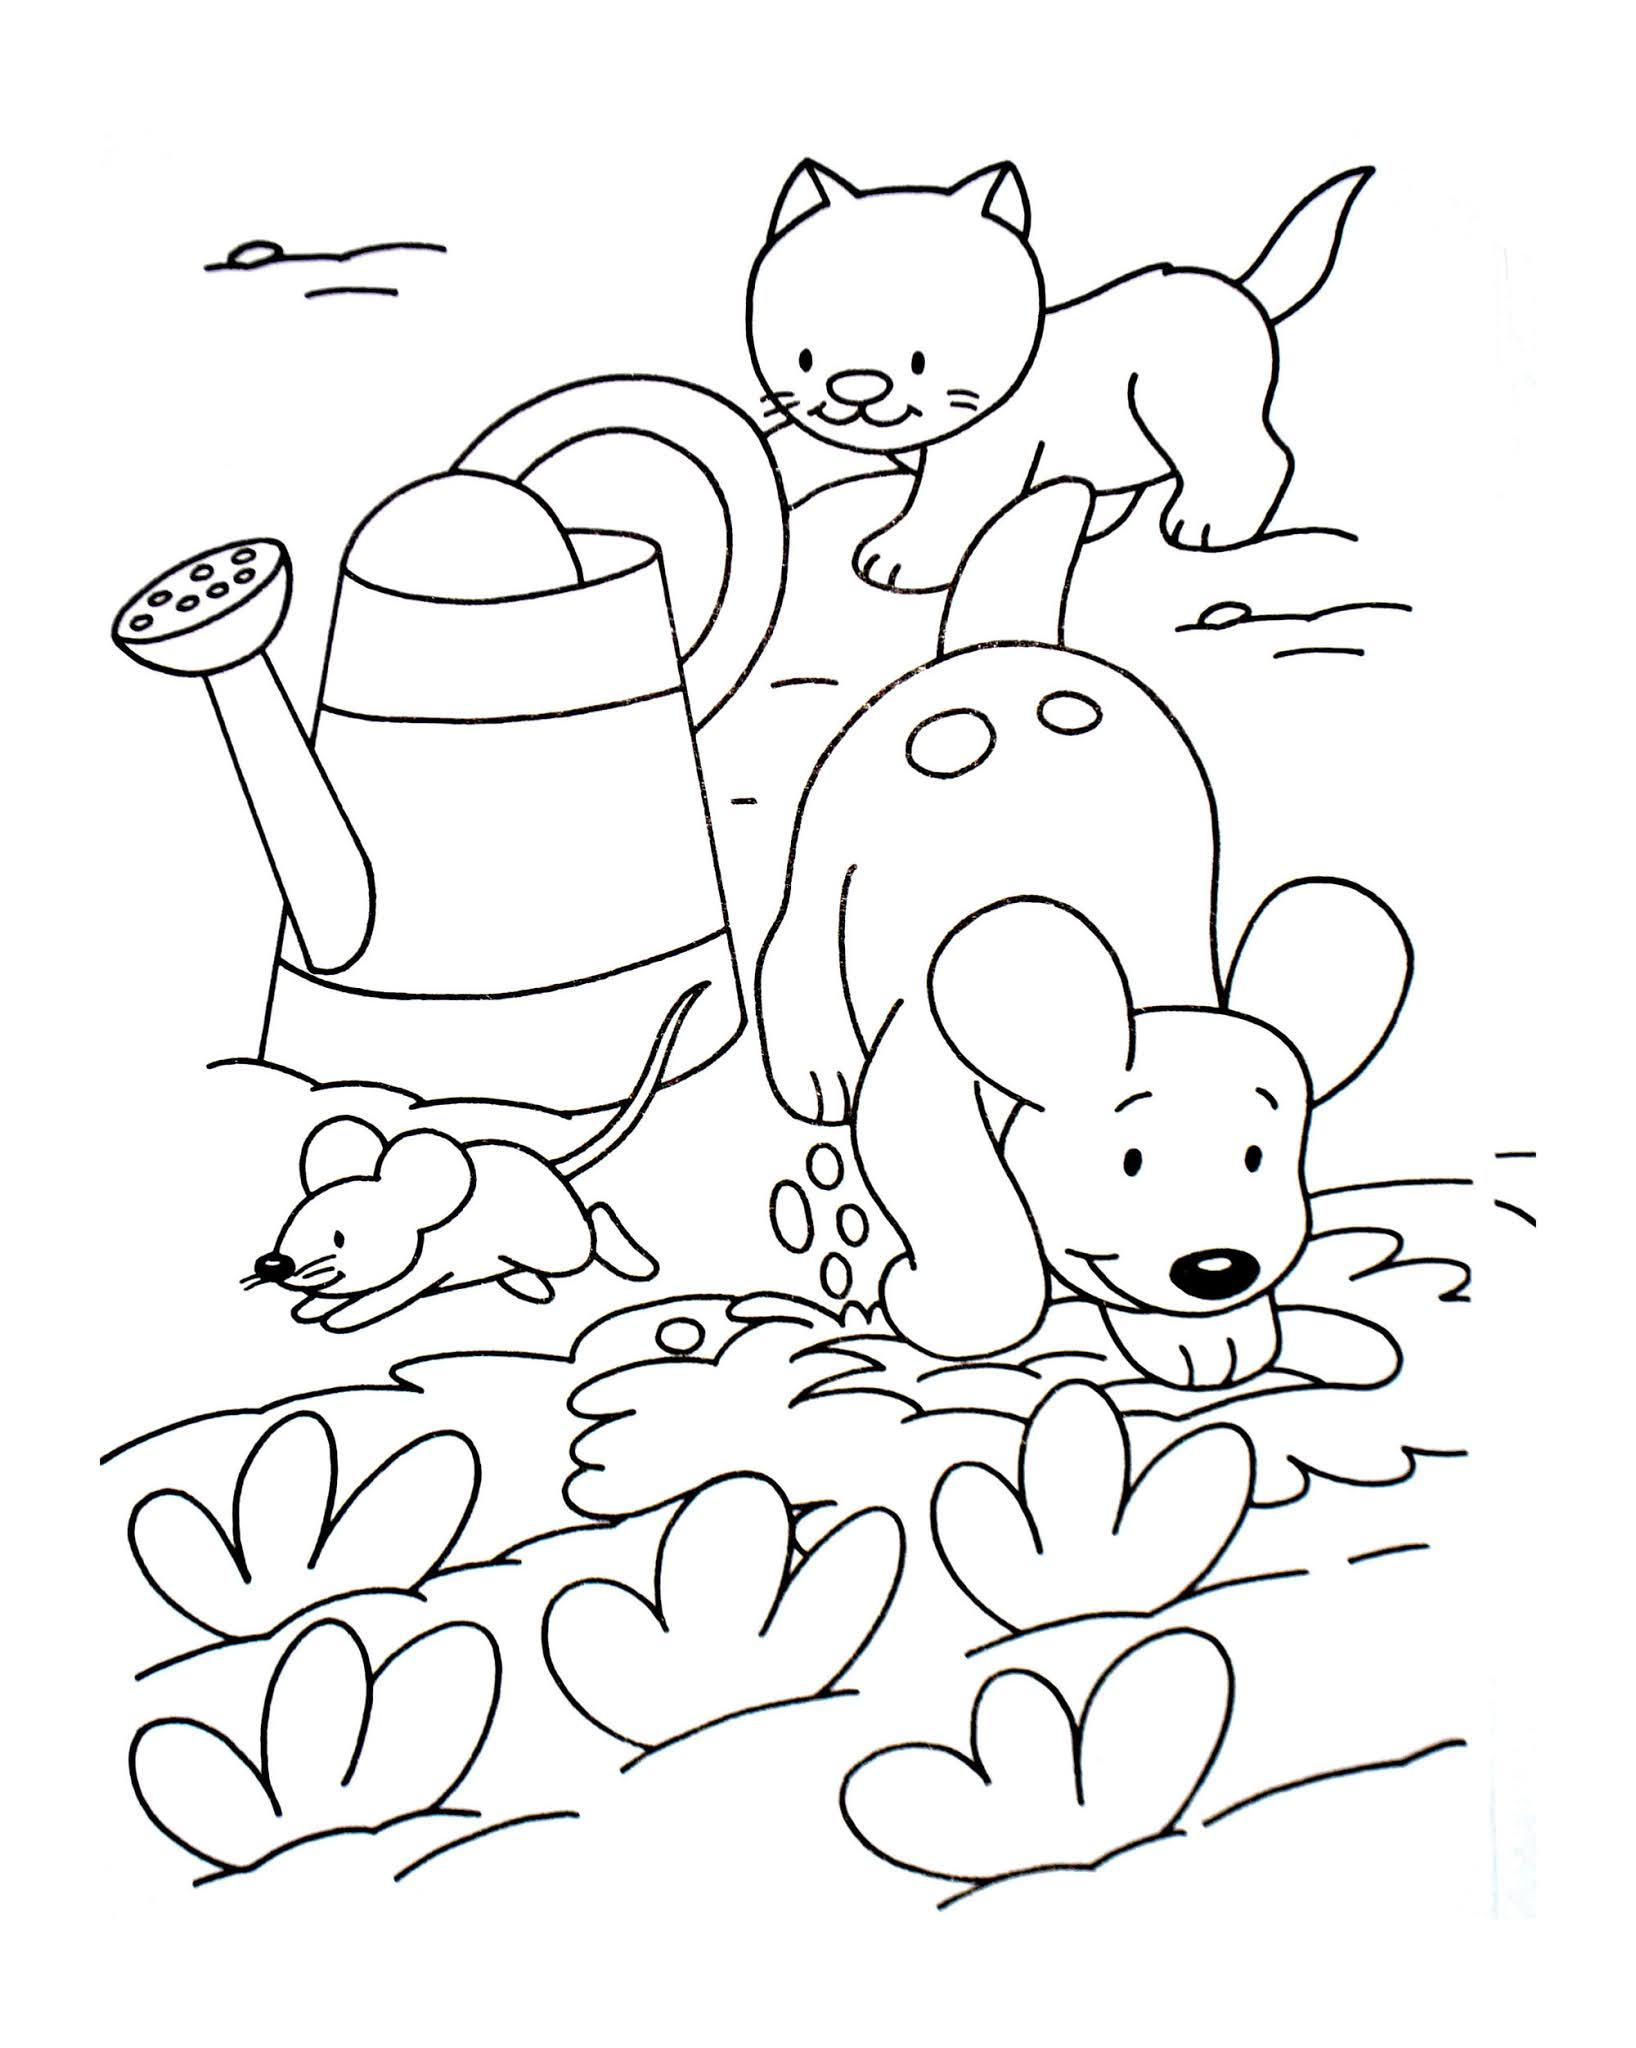 Dogs coloring pages 63